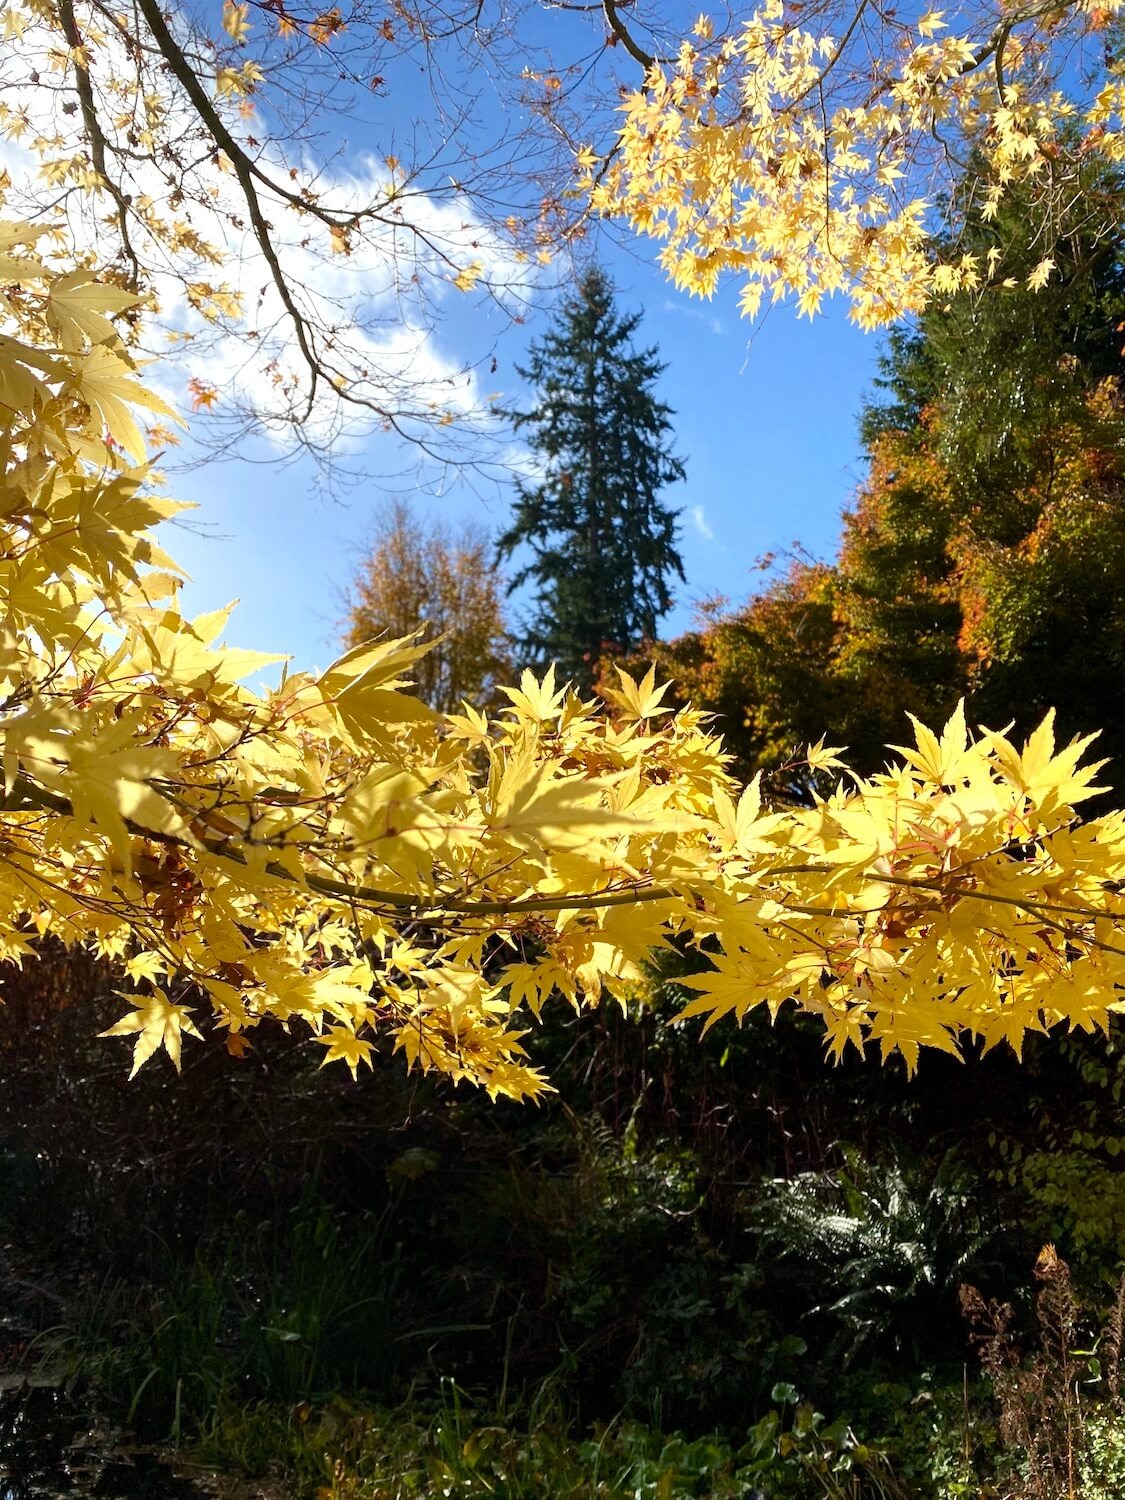 Golden maple leaves bunch up on a branch of a maple tree under the forest canopy and blue skies.